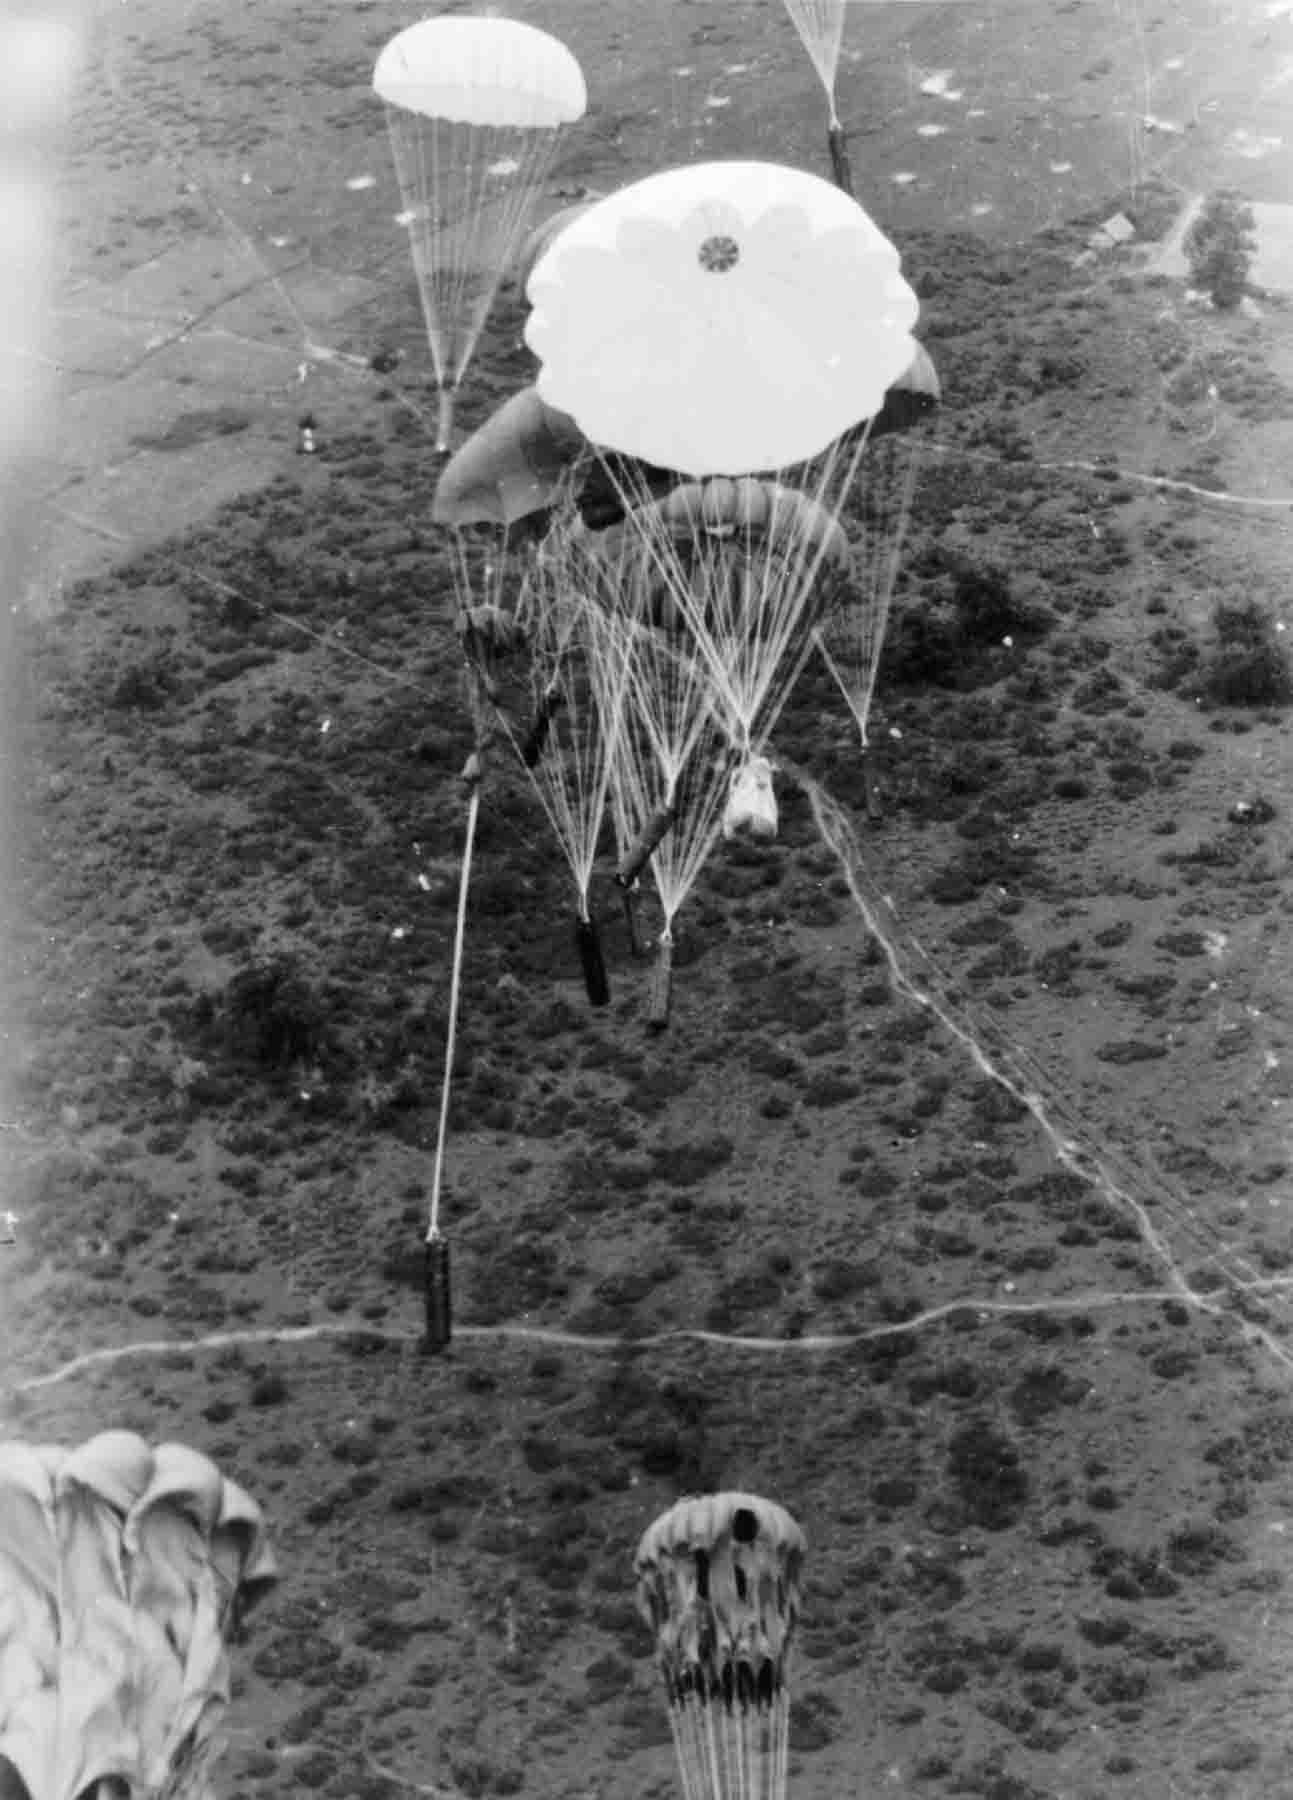 PC71_19_1886 Supply containers going down in Indo-China, 1945